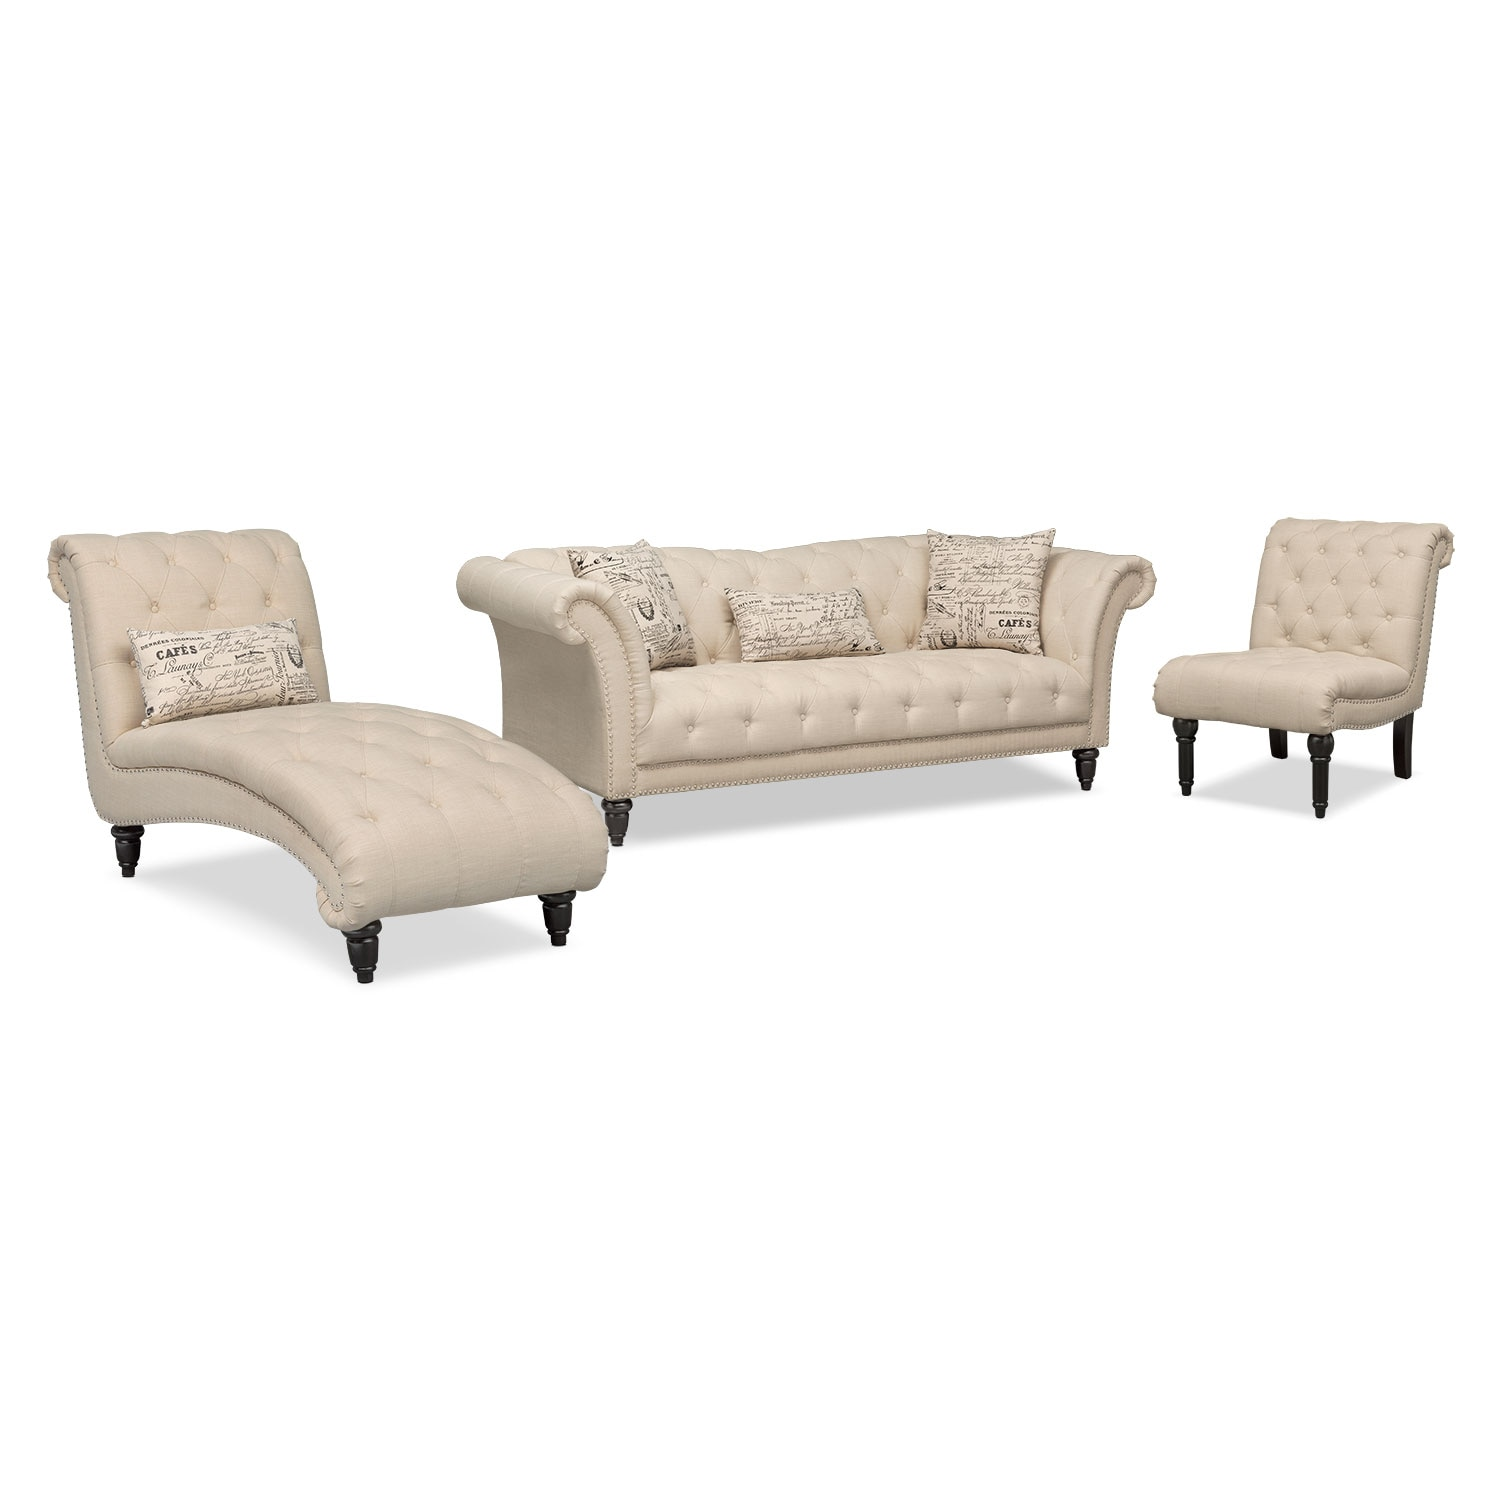 Marisol Sofa Chaise and Armless Chair Beige